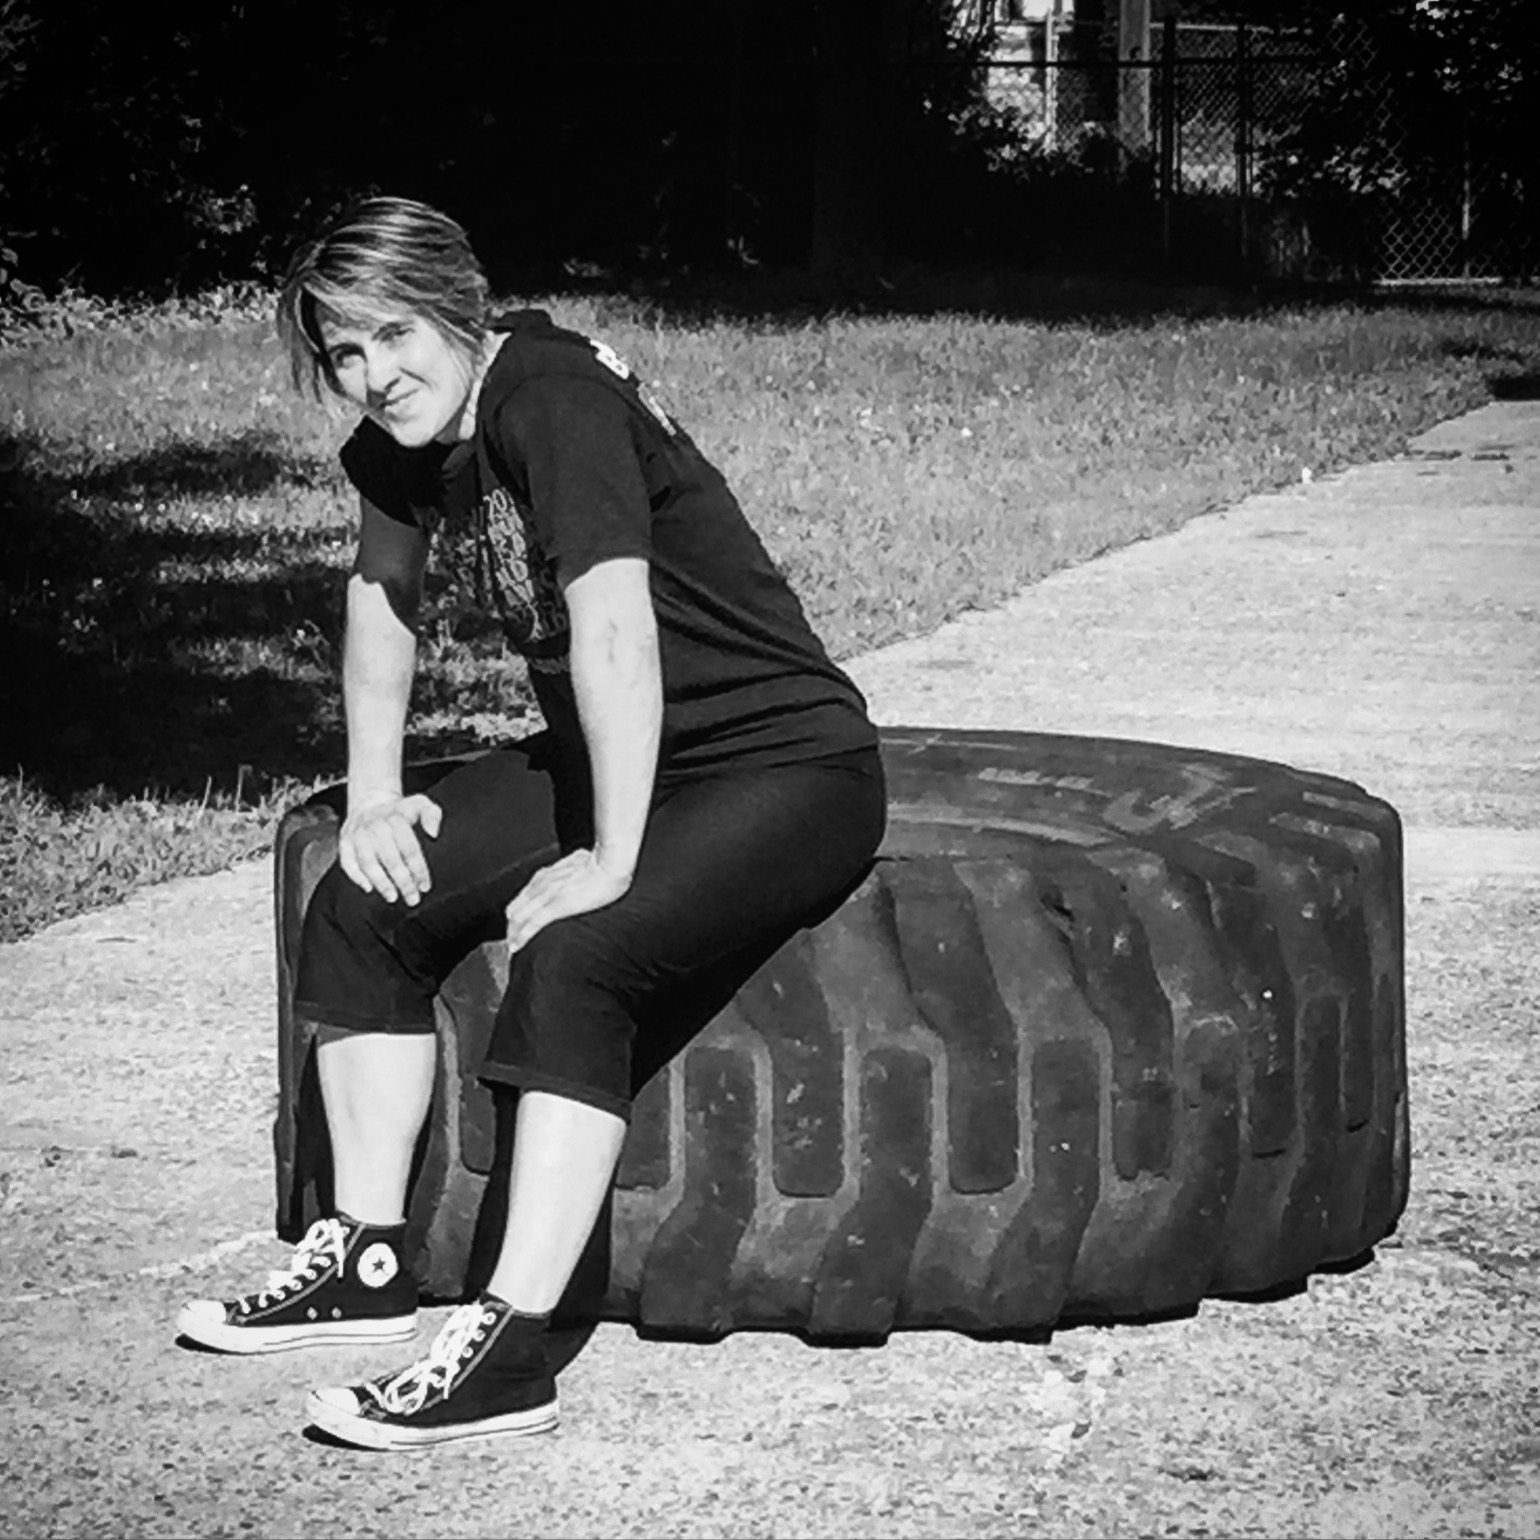 """Even while not actively competing, many still regard strongman community leader Gina Melnik (Next Level Resource and  alumnus from  The Drive(n) ) as a """"competitive athlete."""""""